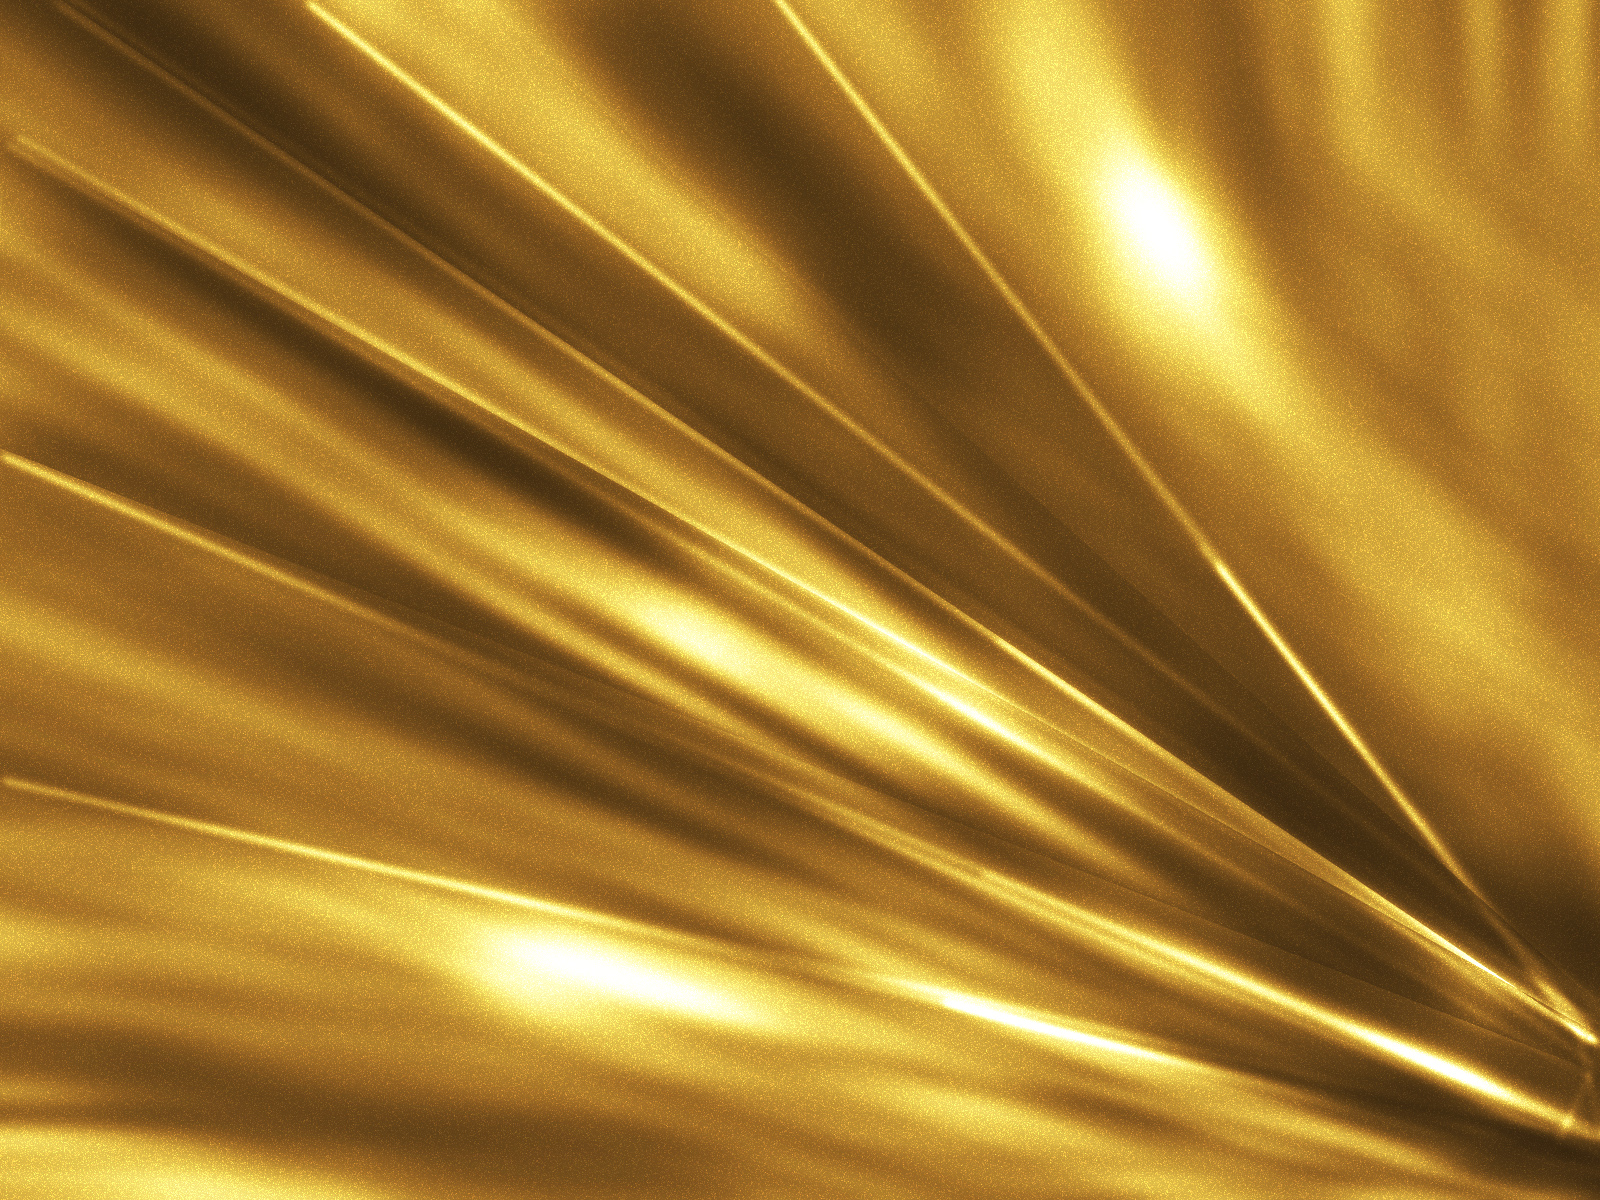 white and gold wallpaper 23771 1600x1200 px